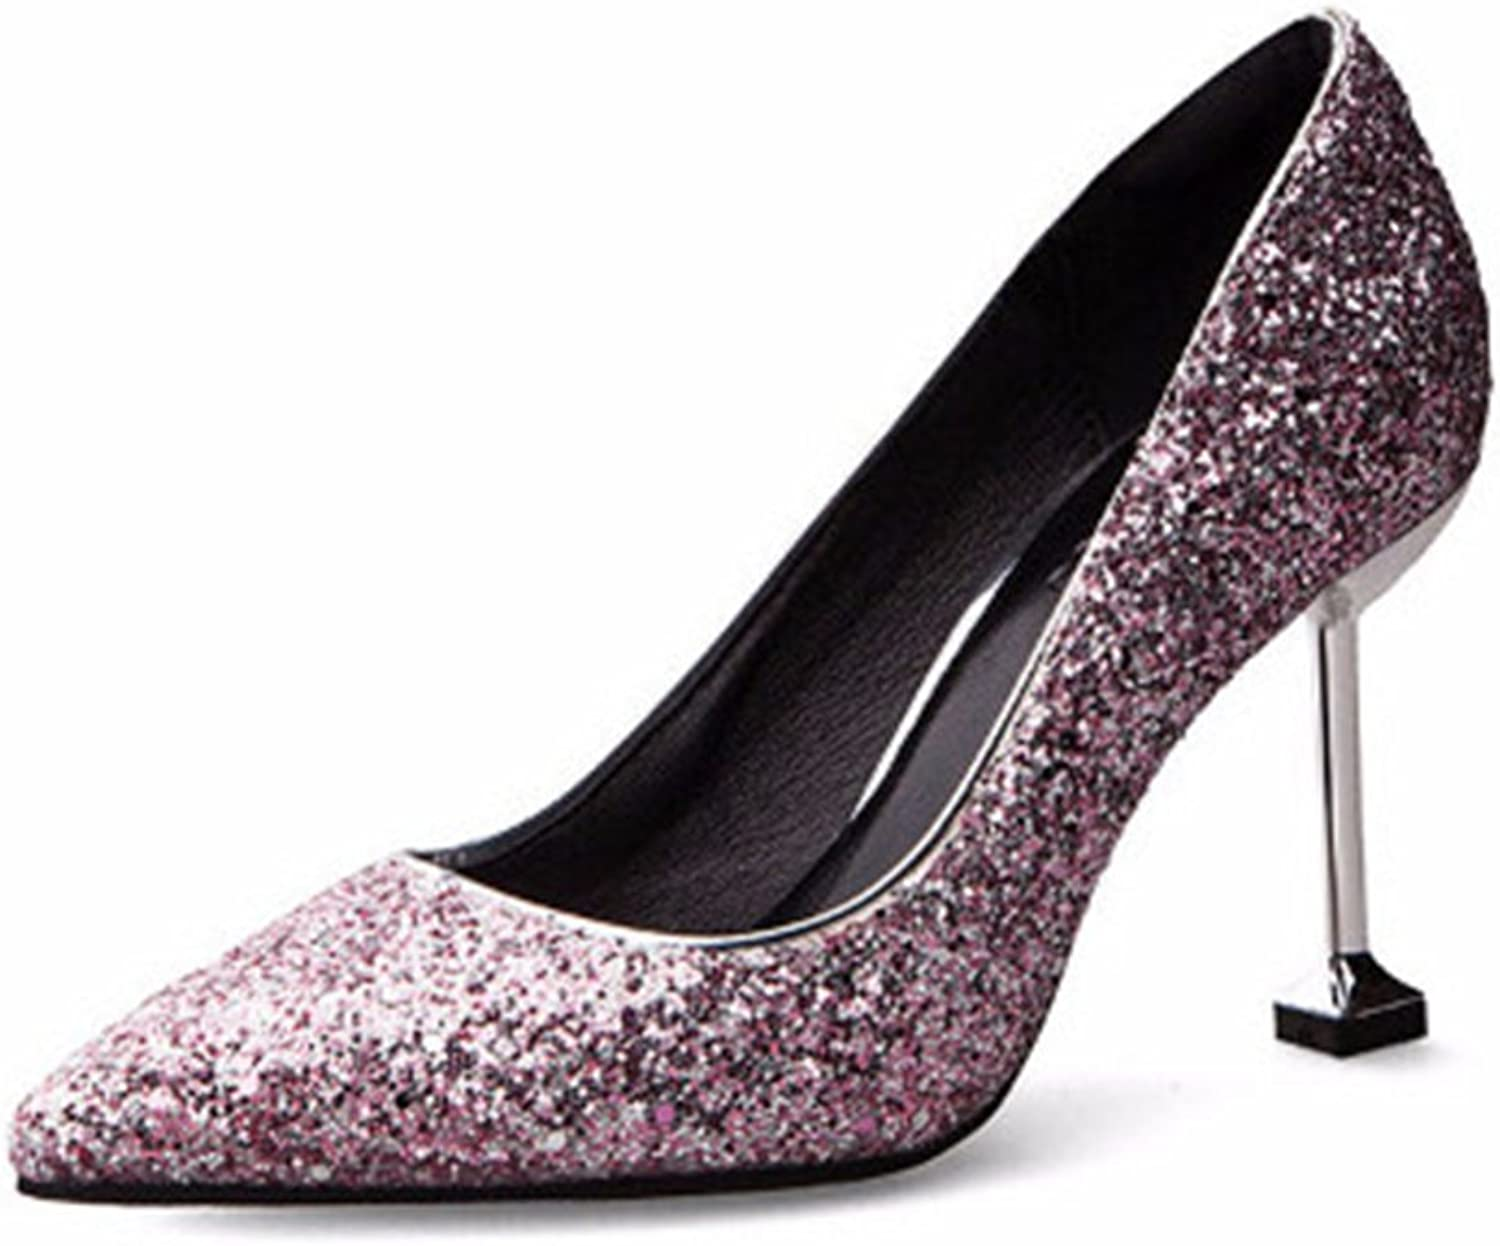 MIKA HOM Women's High Heels,Pointed Toe Patent Pumps shoes for Ladies Party Dress